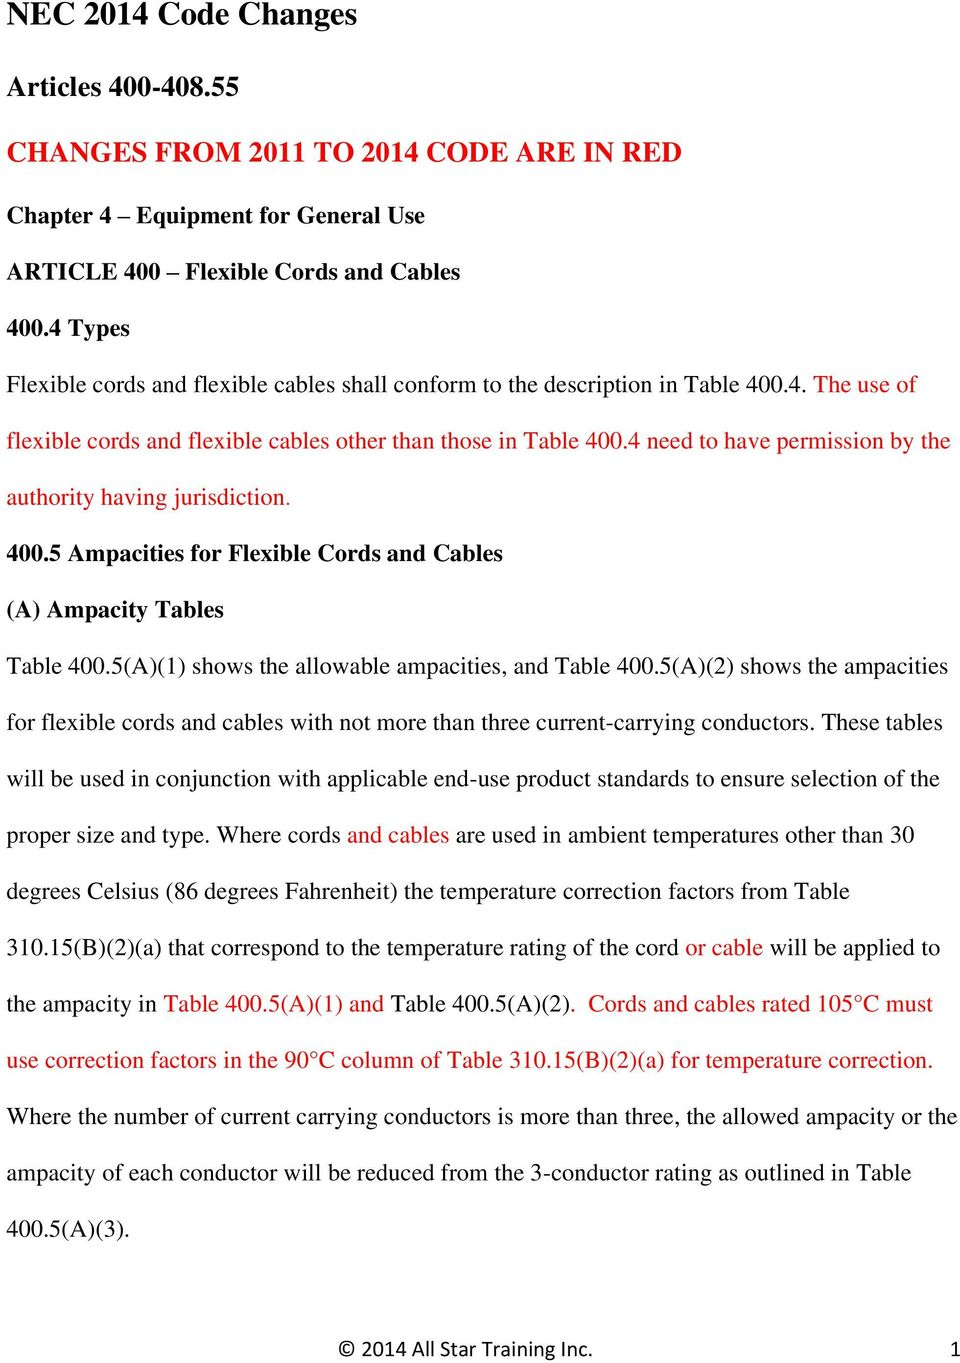 Nec 2014 code changes pdf 4 need to have permission by the authority having jurisdiction 4005 ampacities for flexible cords greentooth Choice Image